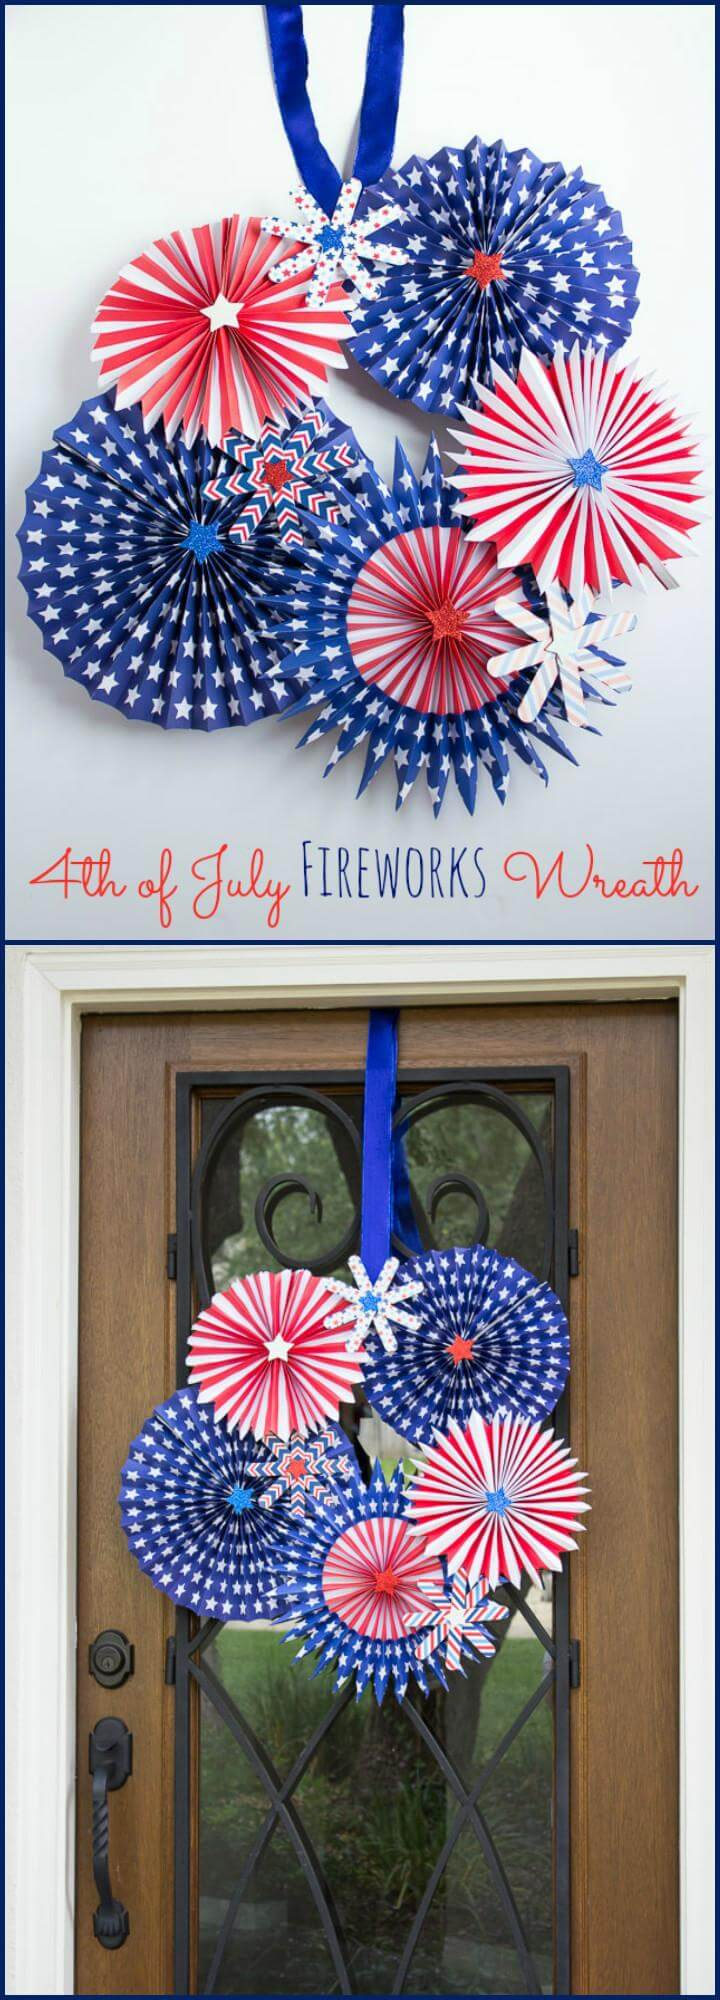 34 DIY 4th Of July Fireworks Wreath